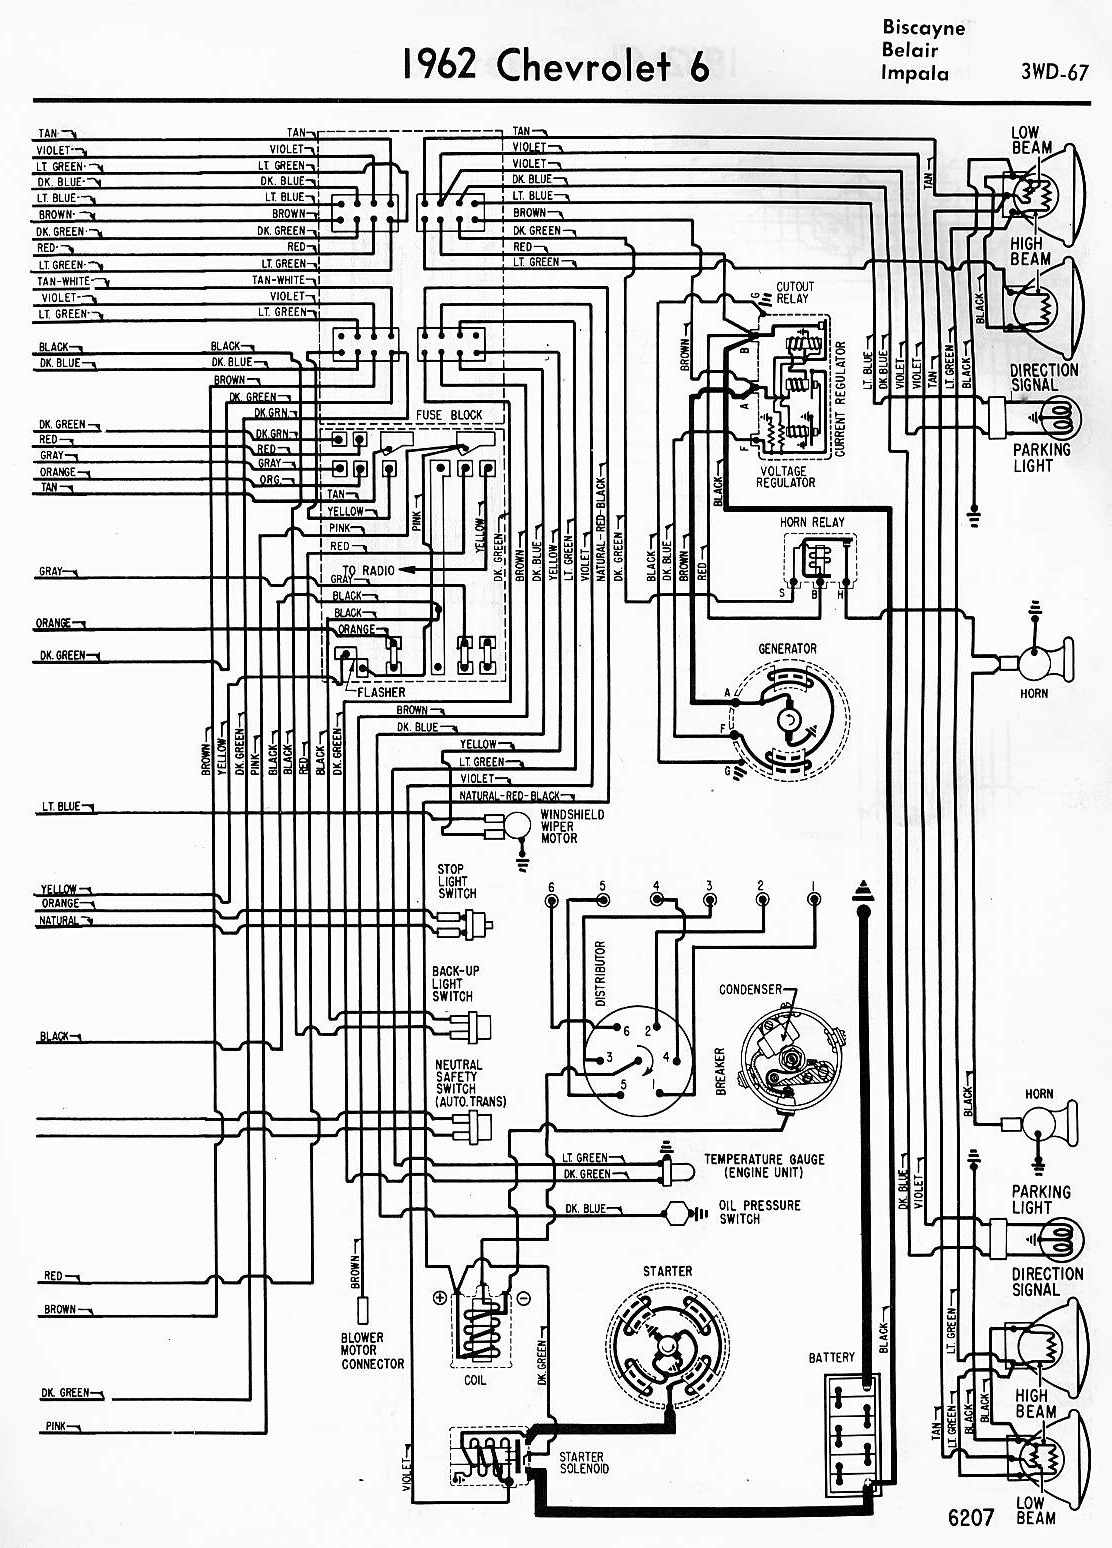 Electrical+Wiring+Diagram+Of+1964+Chevrolet+6 electrical wiring diagram of 1962 chevrolet 6 all about wiring 1963 corvair wiring diagram at gsmx.co